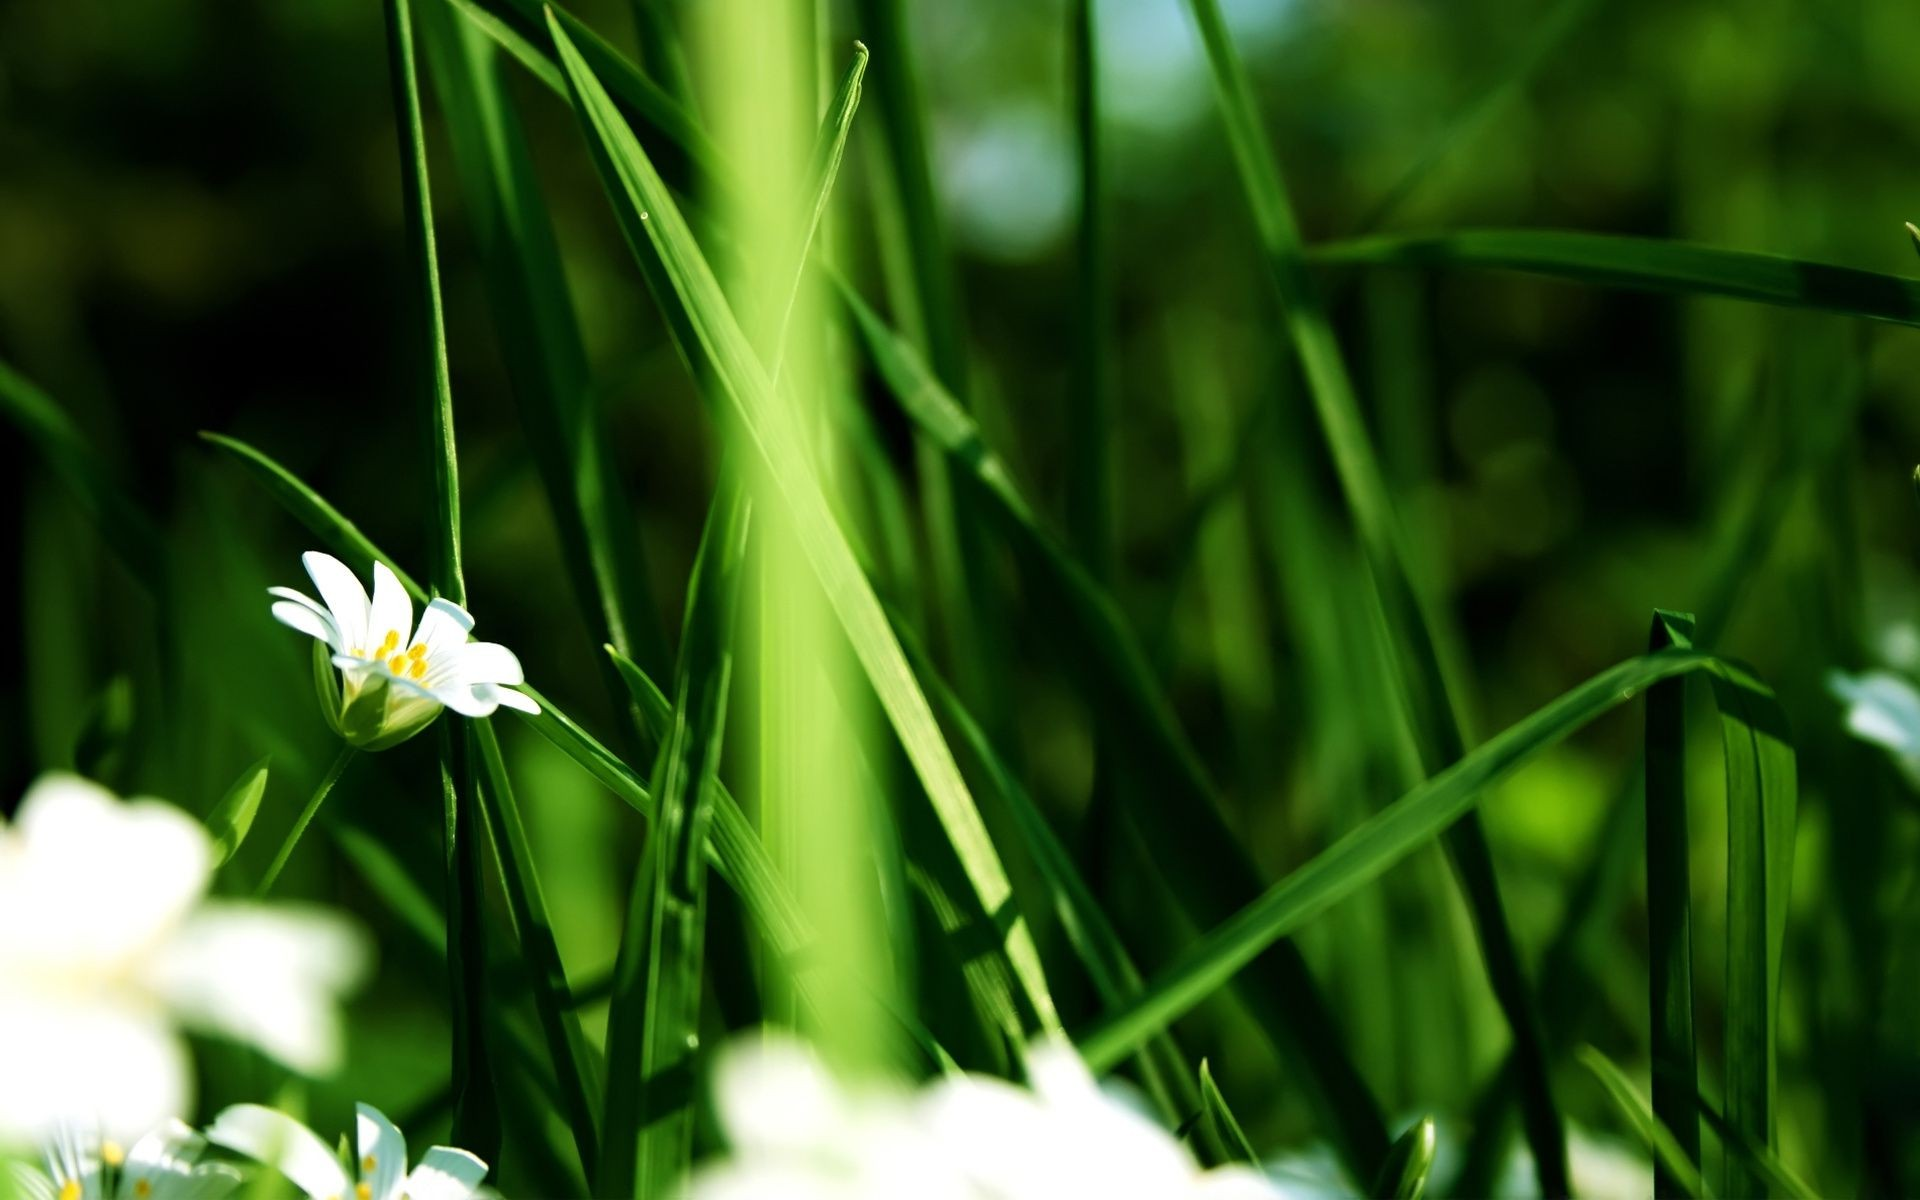 White Flower In The Grass Desktop Wallpapers For Free